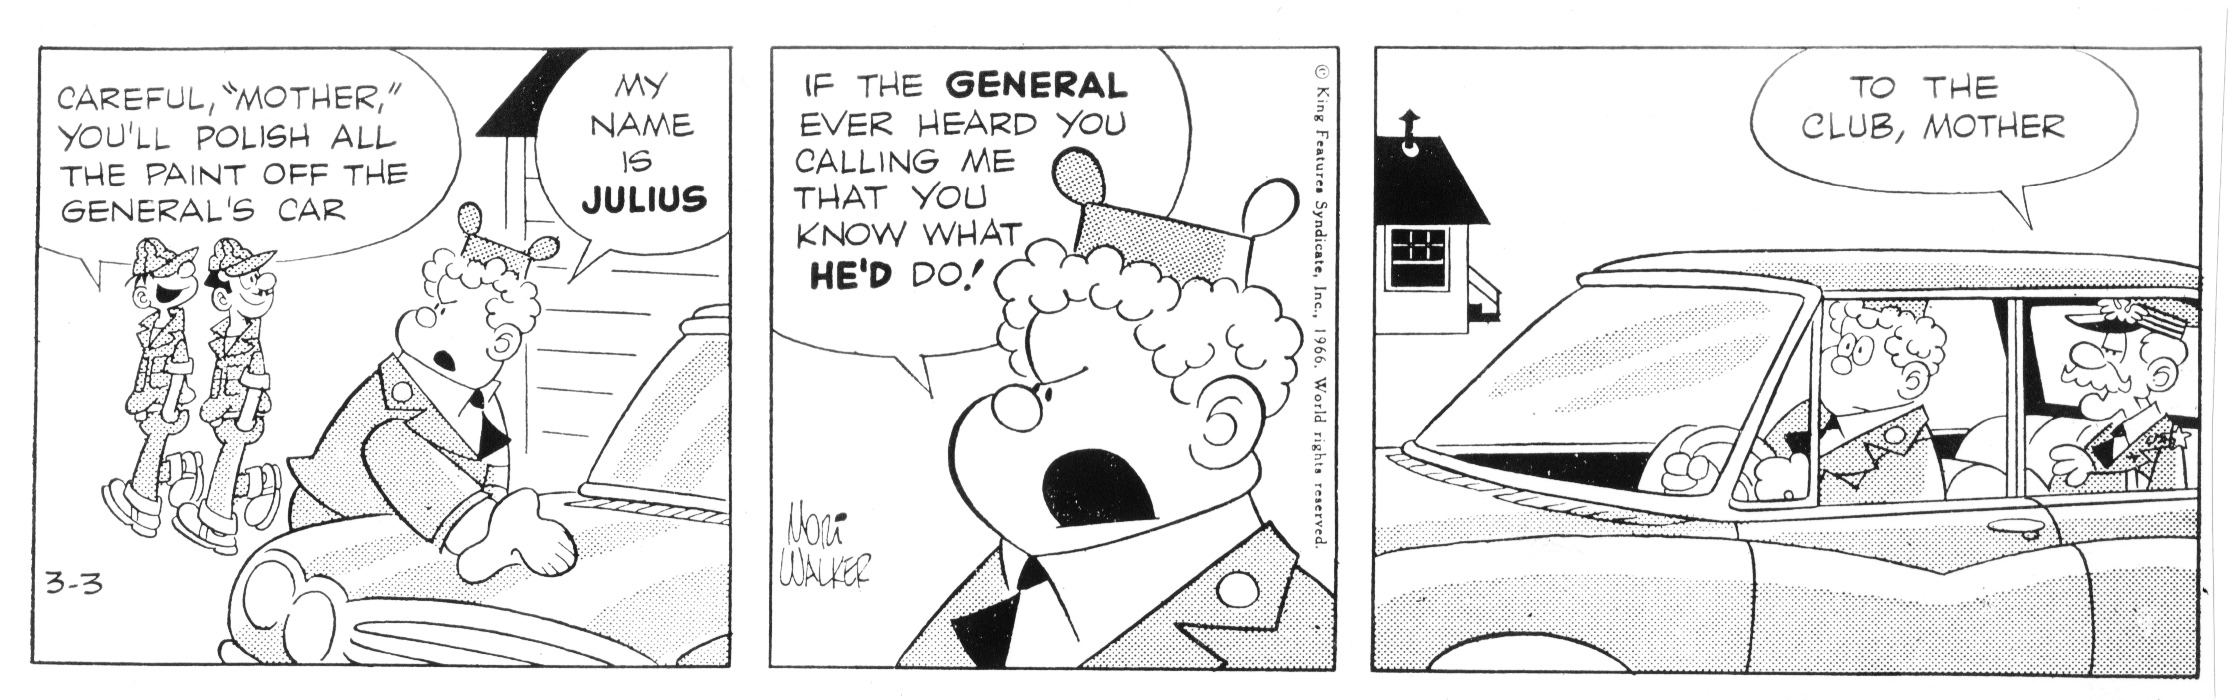 Beetle Bailey daily strip, March 3, 1966.